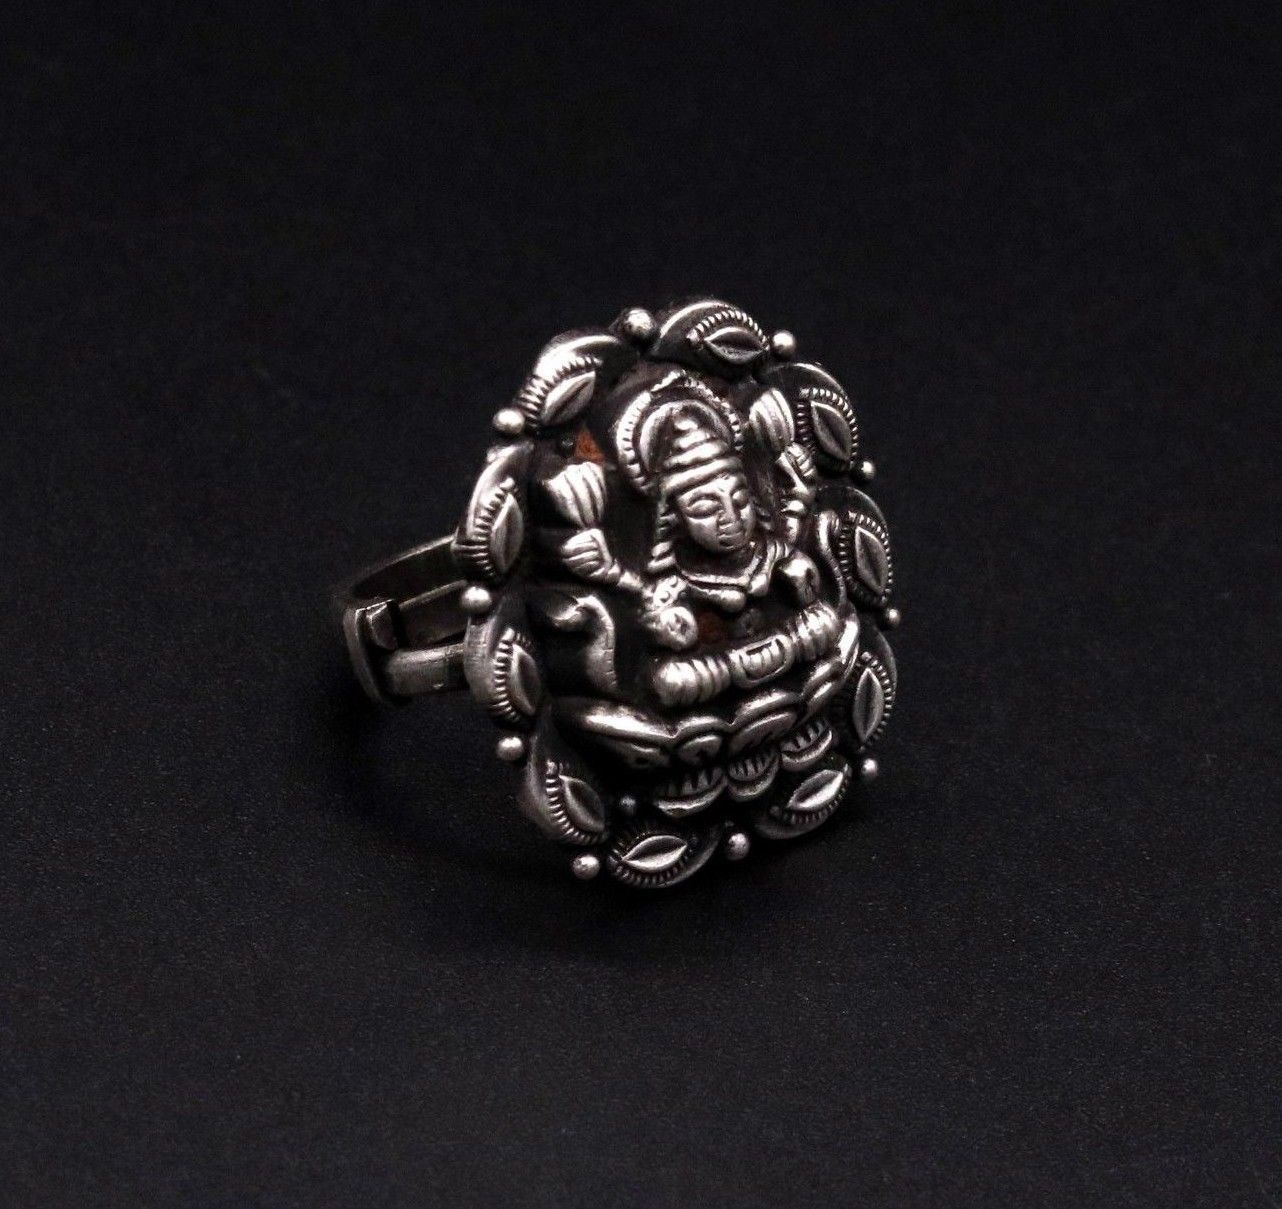 Primary image for TRADITIONAL DESIGN HAND ENGRAVED INDIAN GODDESS LAXMI DESIGN RING JEWELRY SR35